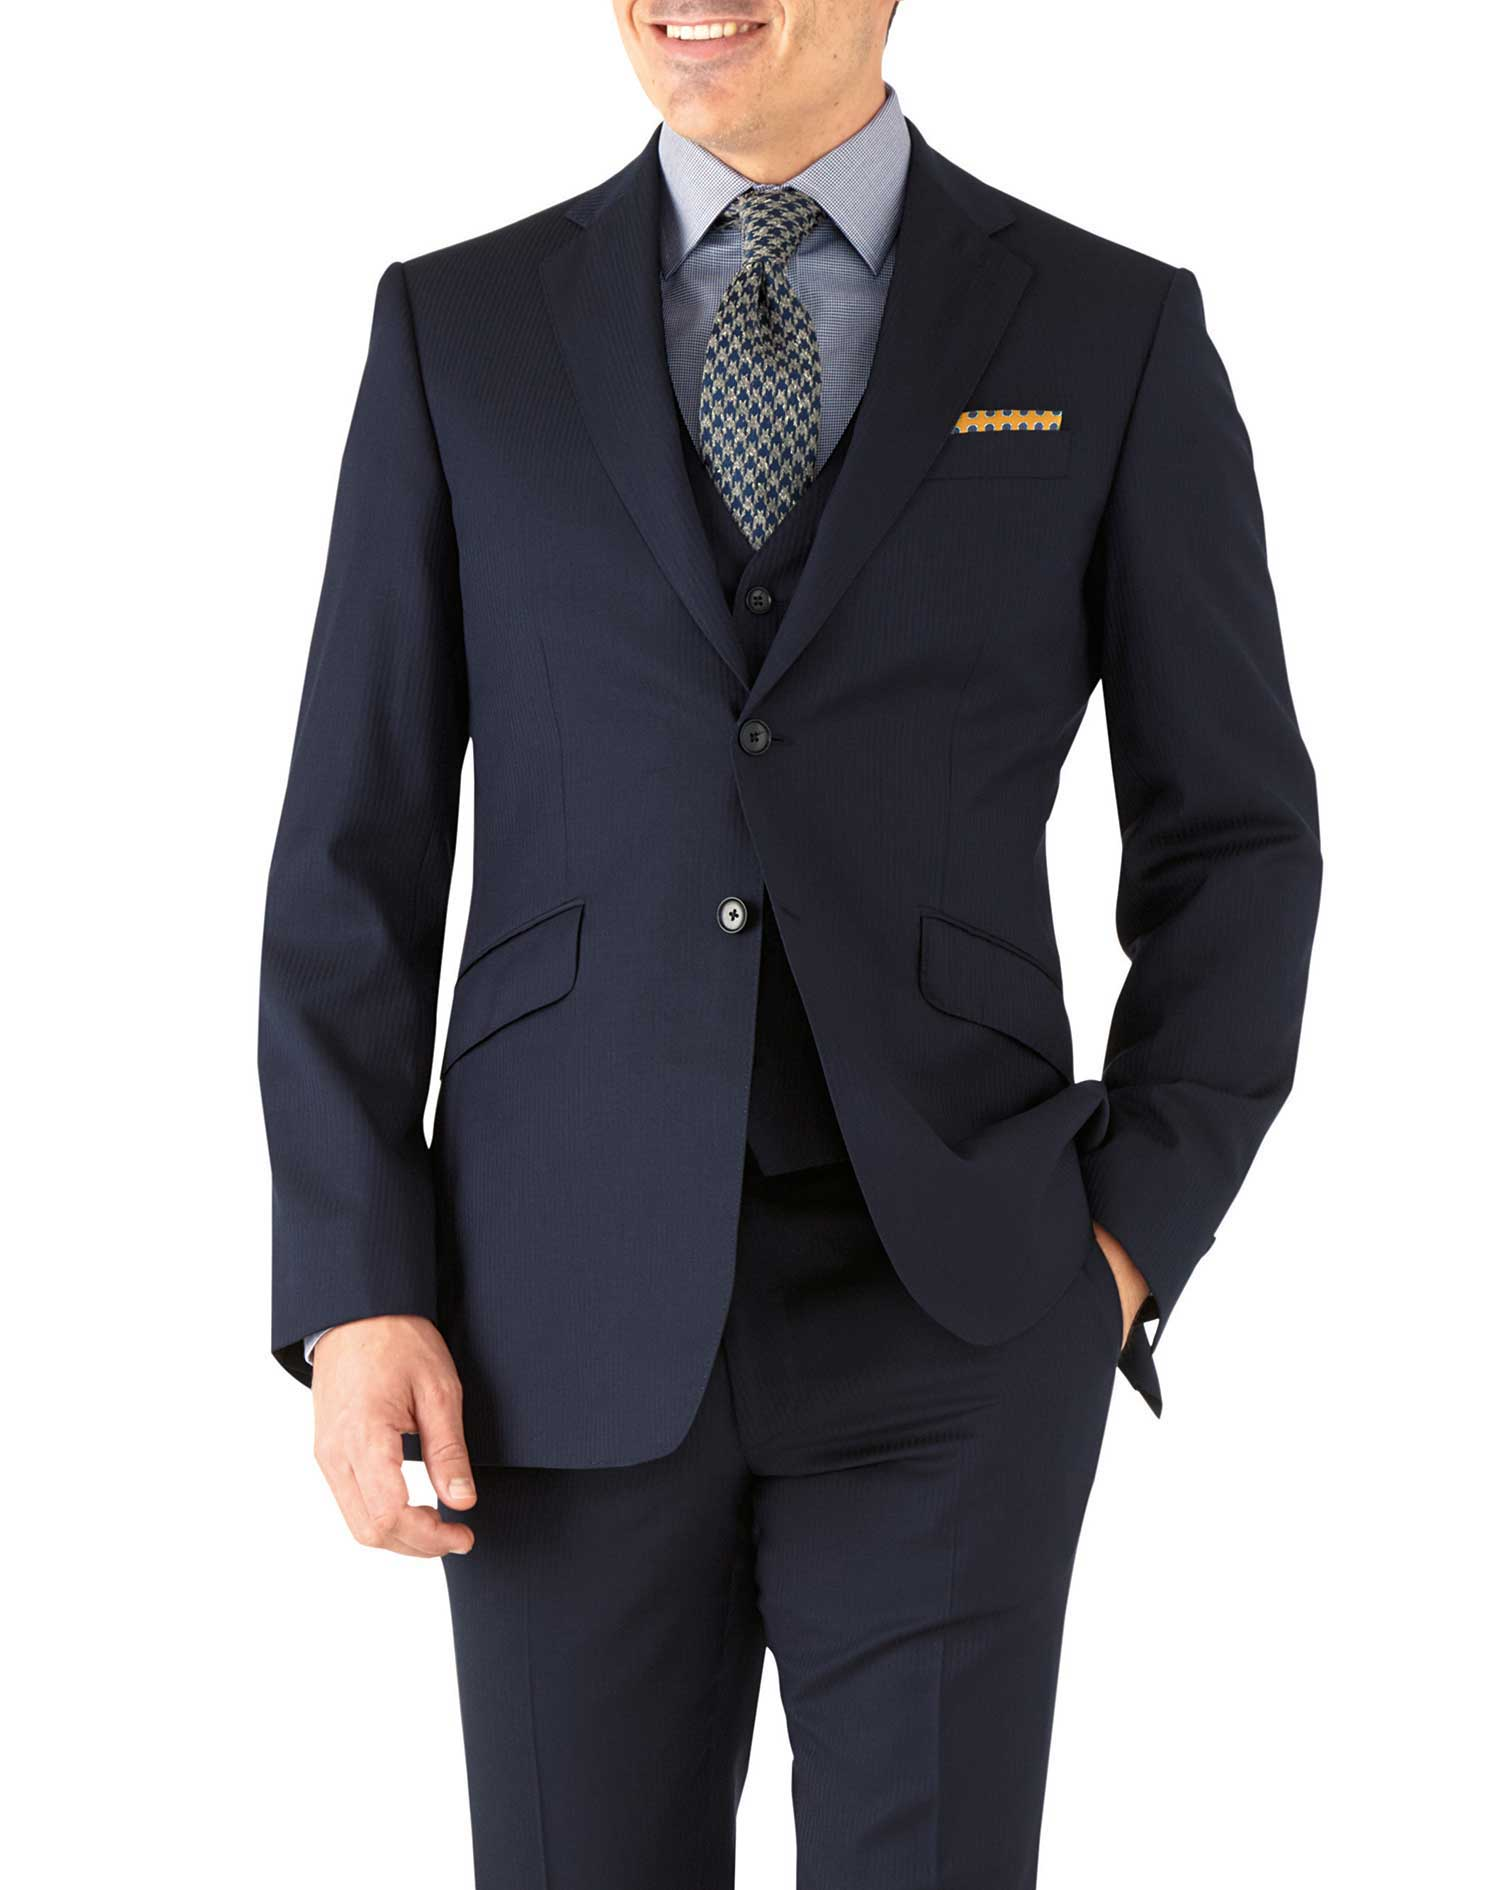 Navy Slim Fit Herringbone Italian Suit Wool Jacket Size 40 Short by Charles Tyrwhitt